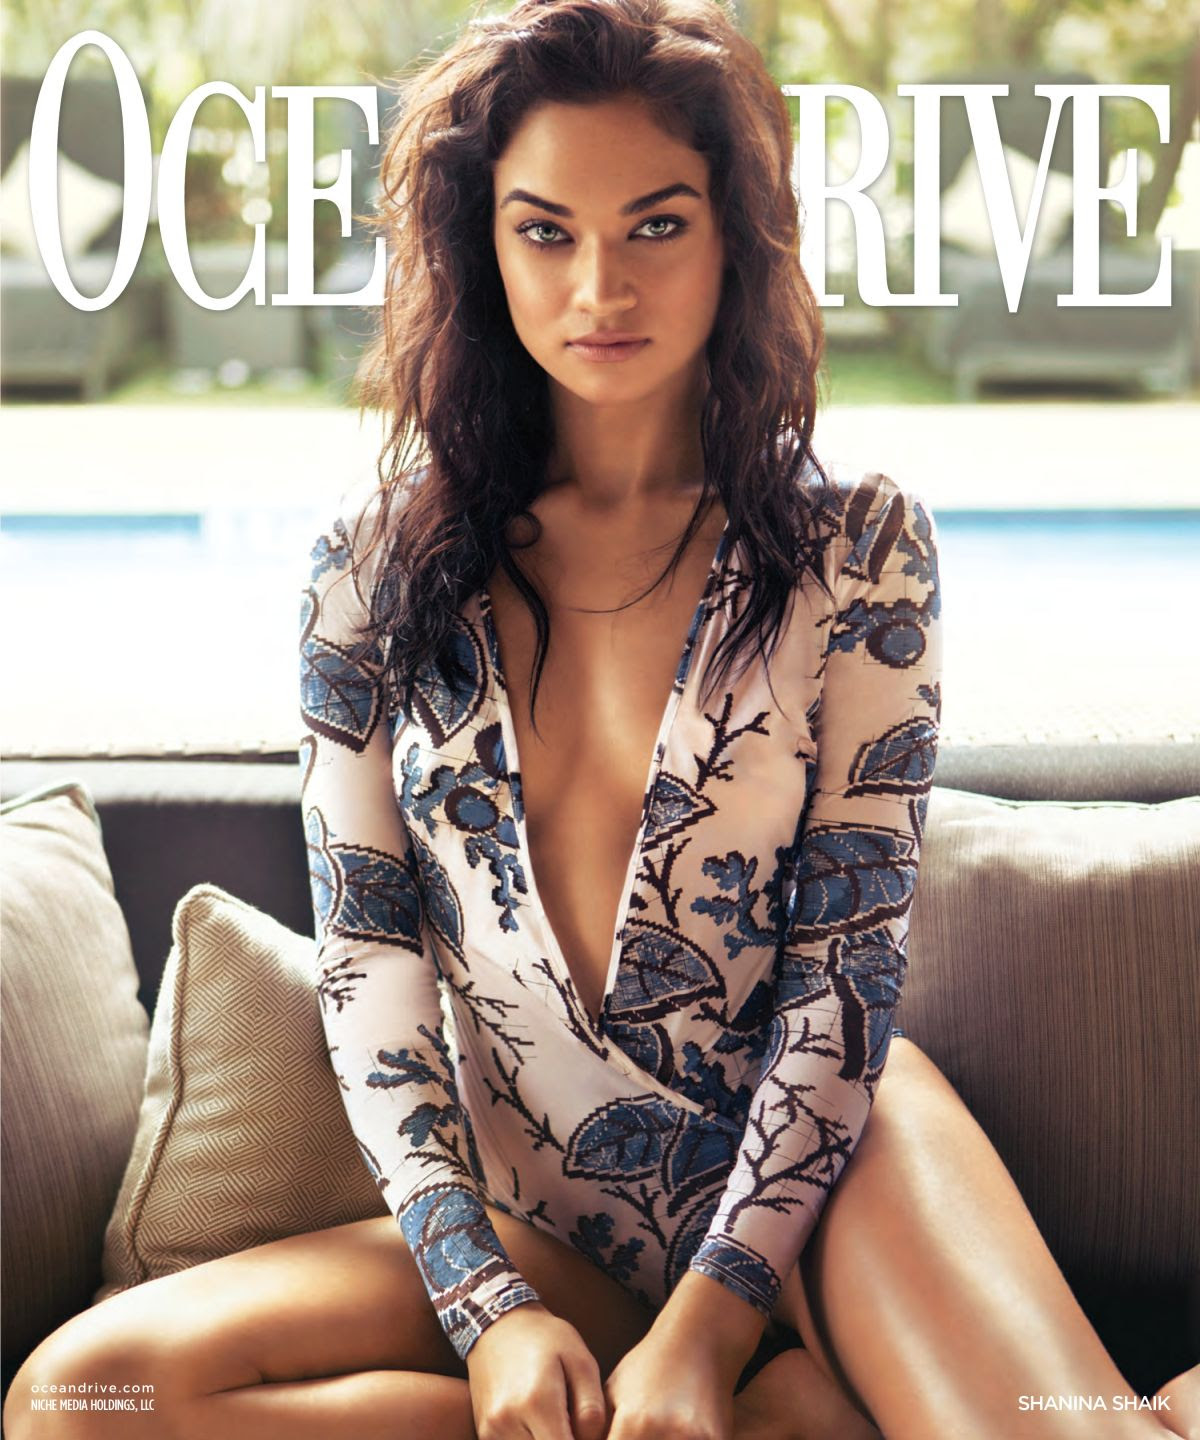 SHANINA SHAIK in Ocean Drive Magazine, February 2016 Issue